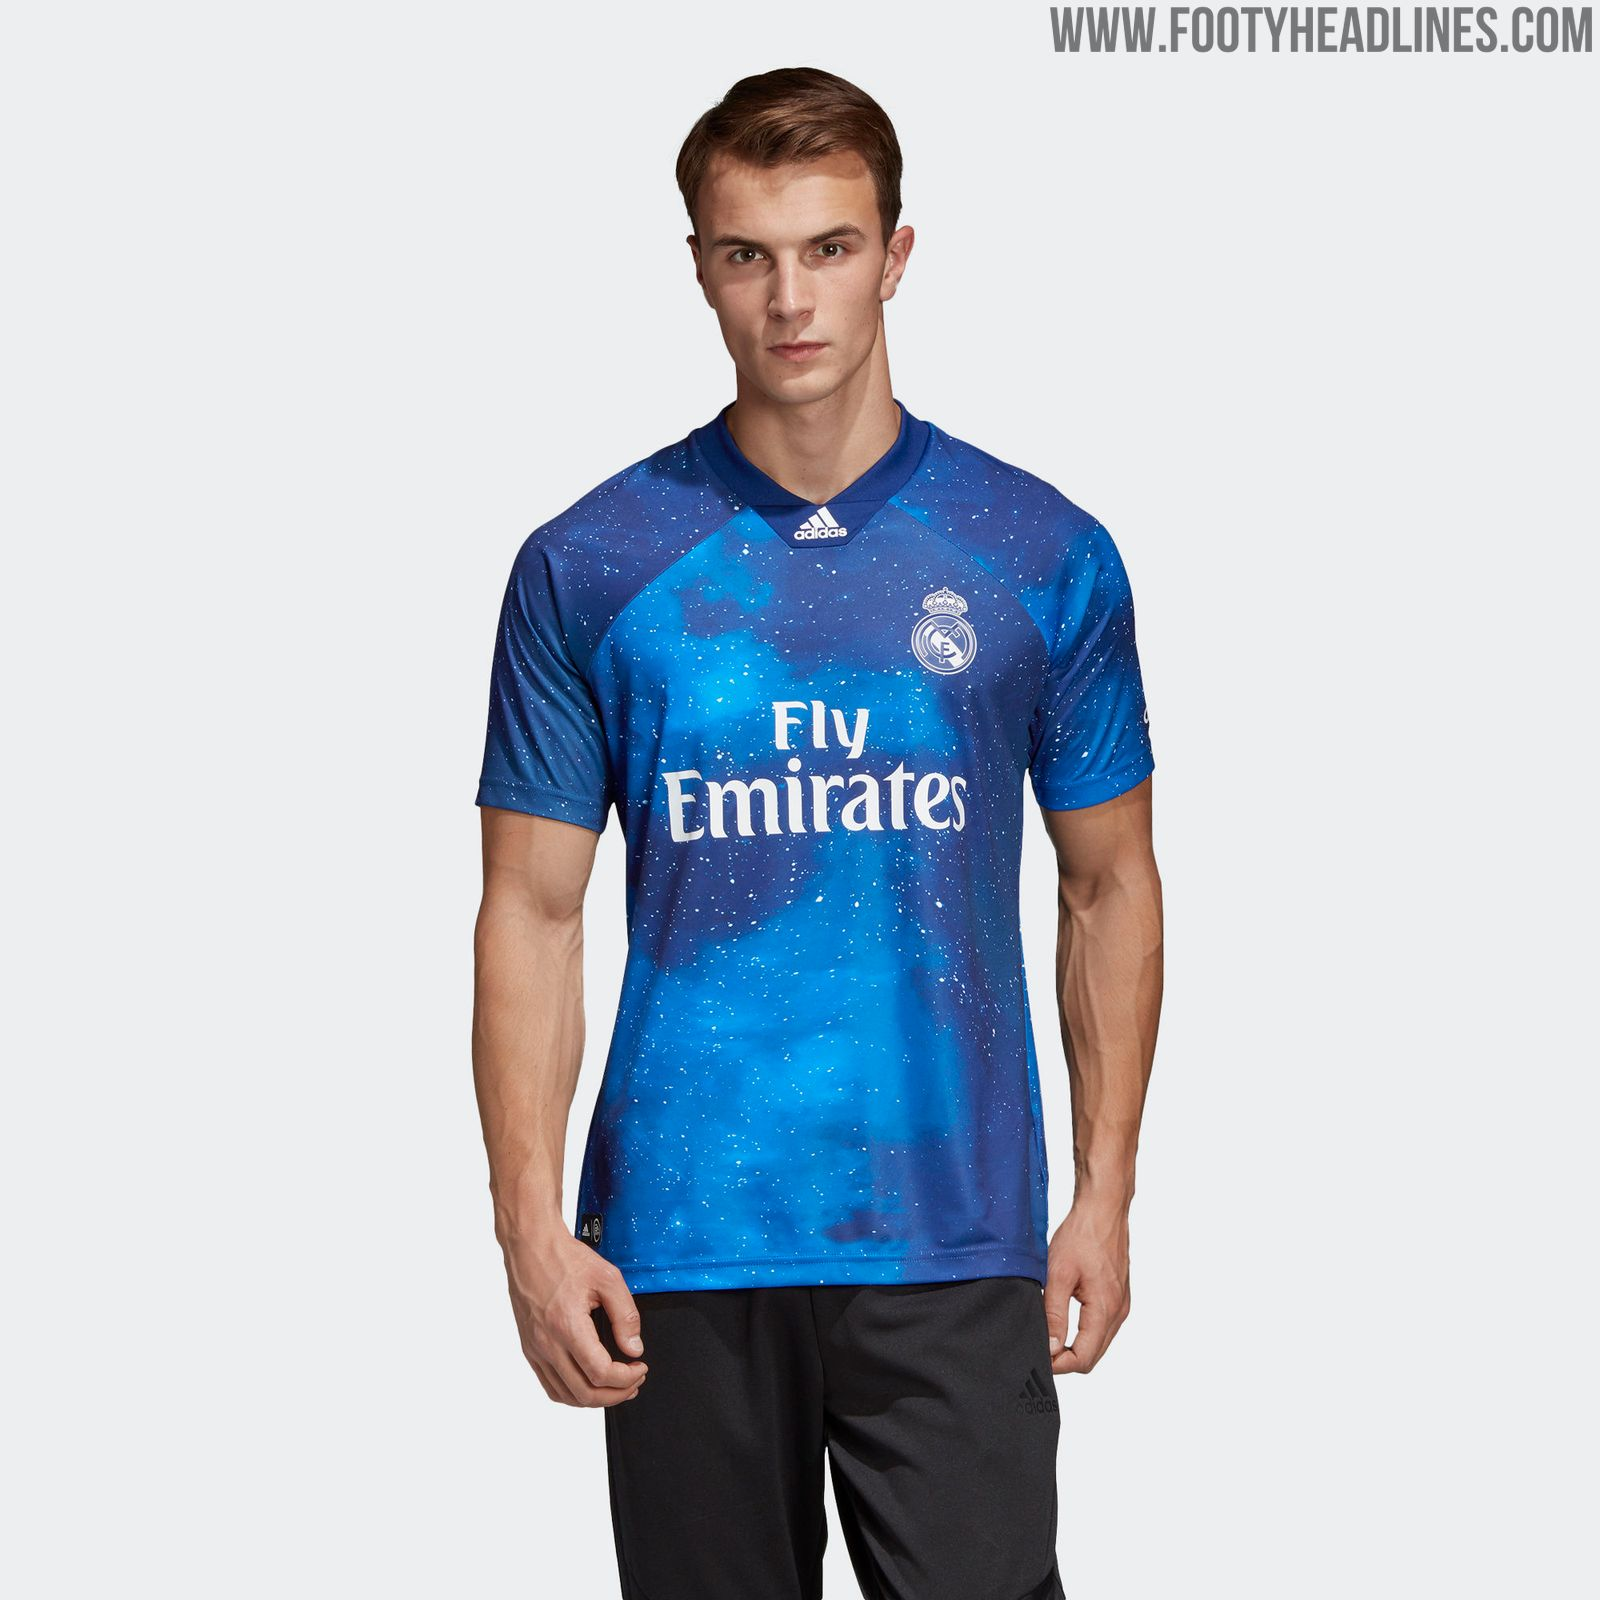 f0a8b1e8b Outstanding Adidas x EA Sports Real Madrid Kit Released